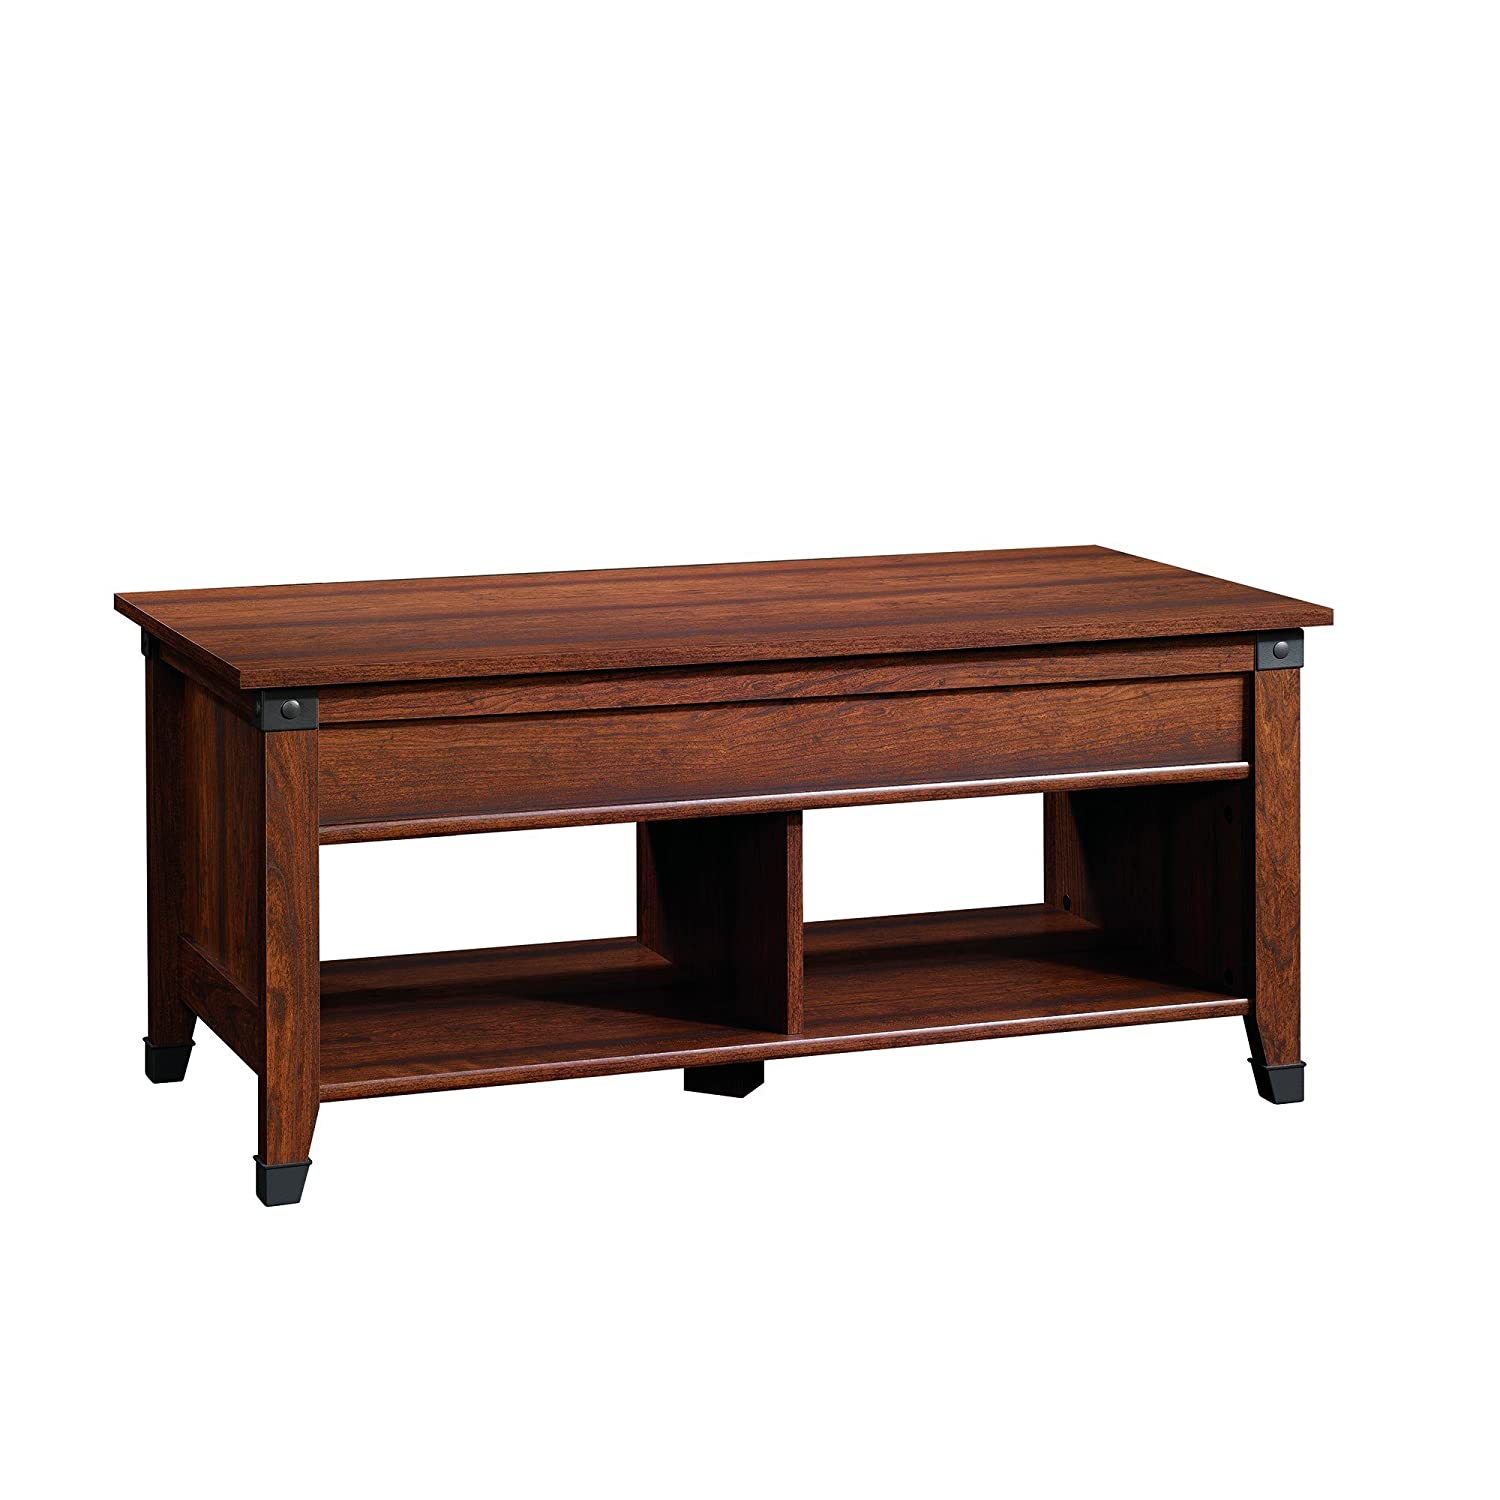 Amazon sauder carson forge lift top coffee table washington amazon sauder carson forge lift top coffee table washington cherry finish kitchen dining geotapseo Choice Image